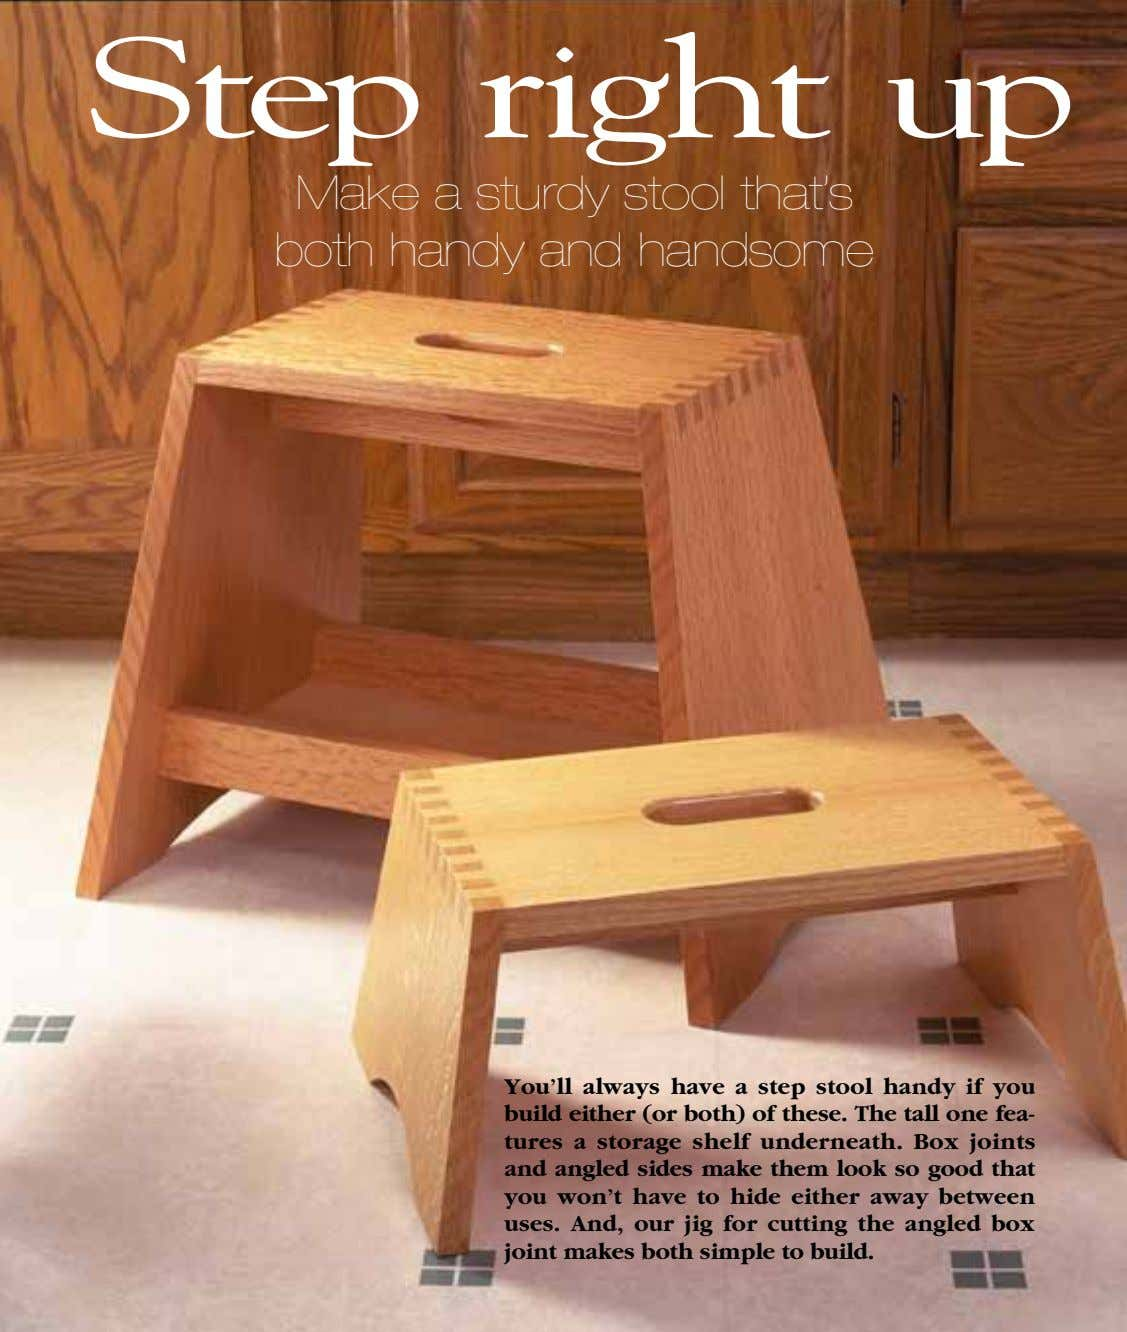 Step right up Make a sturdy stool that's both handy and handsome You'll always have